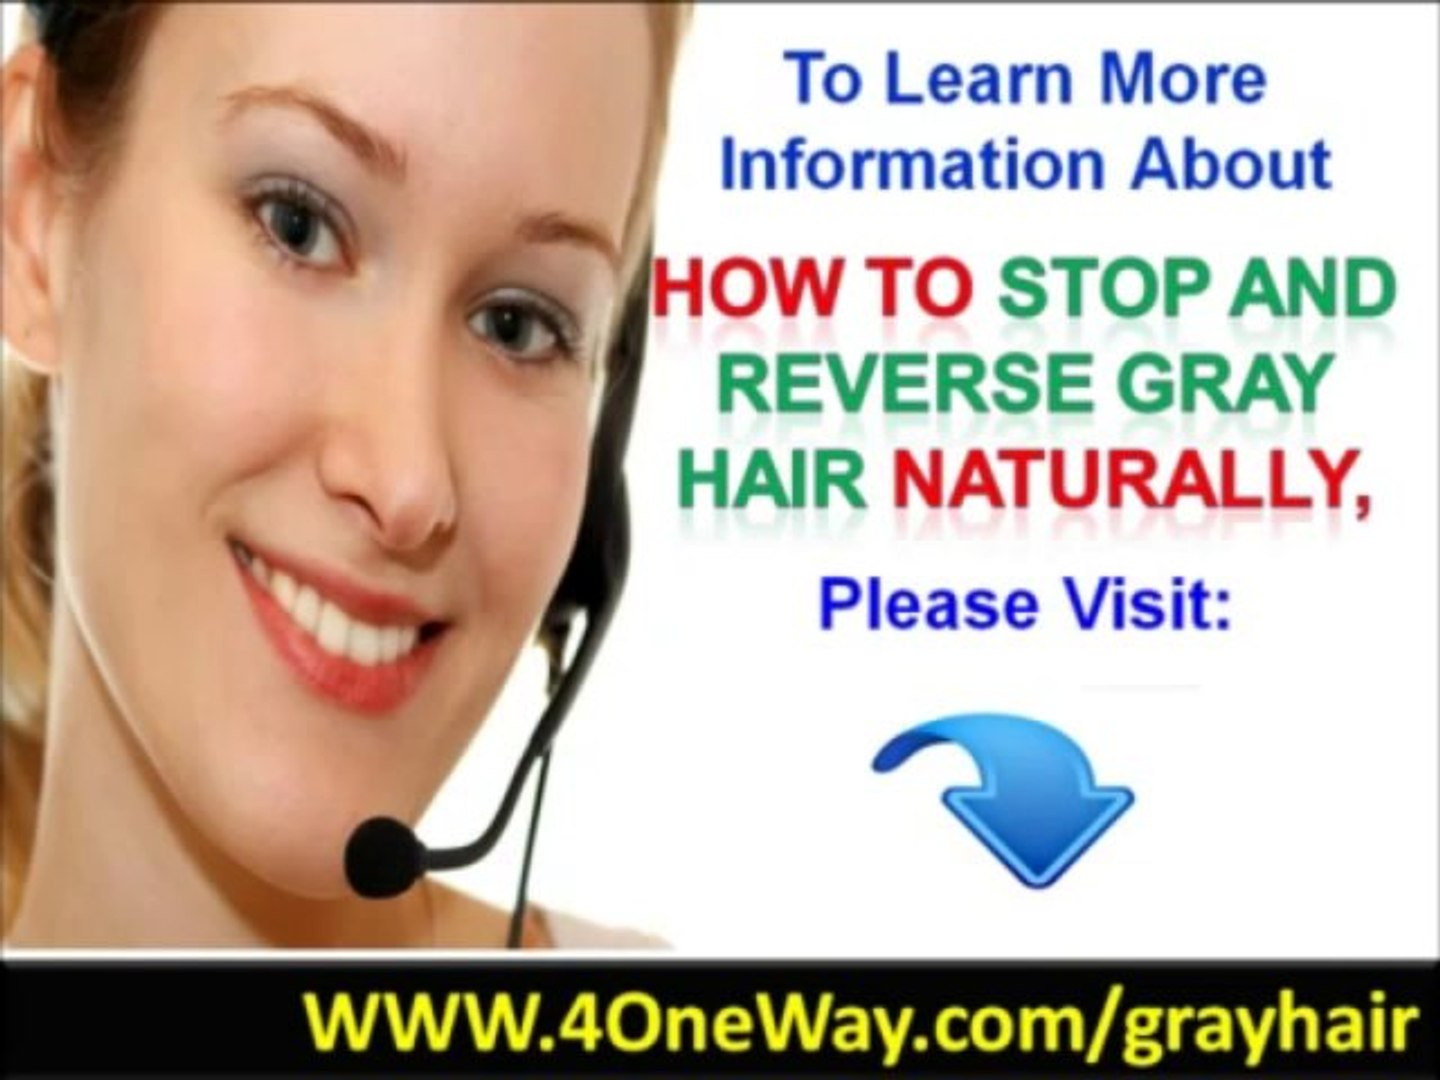 How To Stop And Reverse Gray Hair Naturally - Gray Hair No More